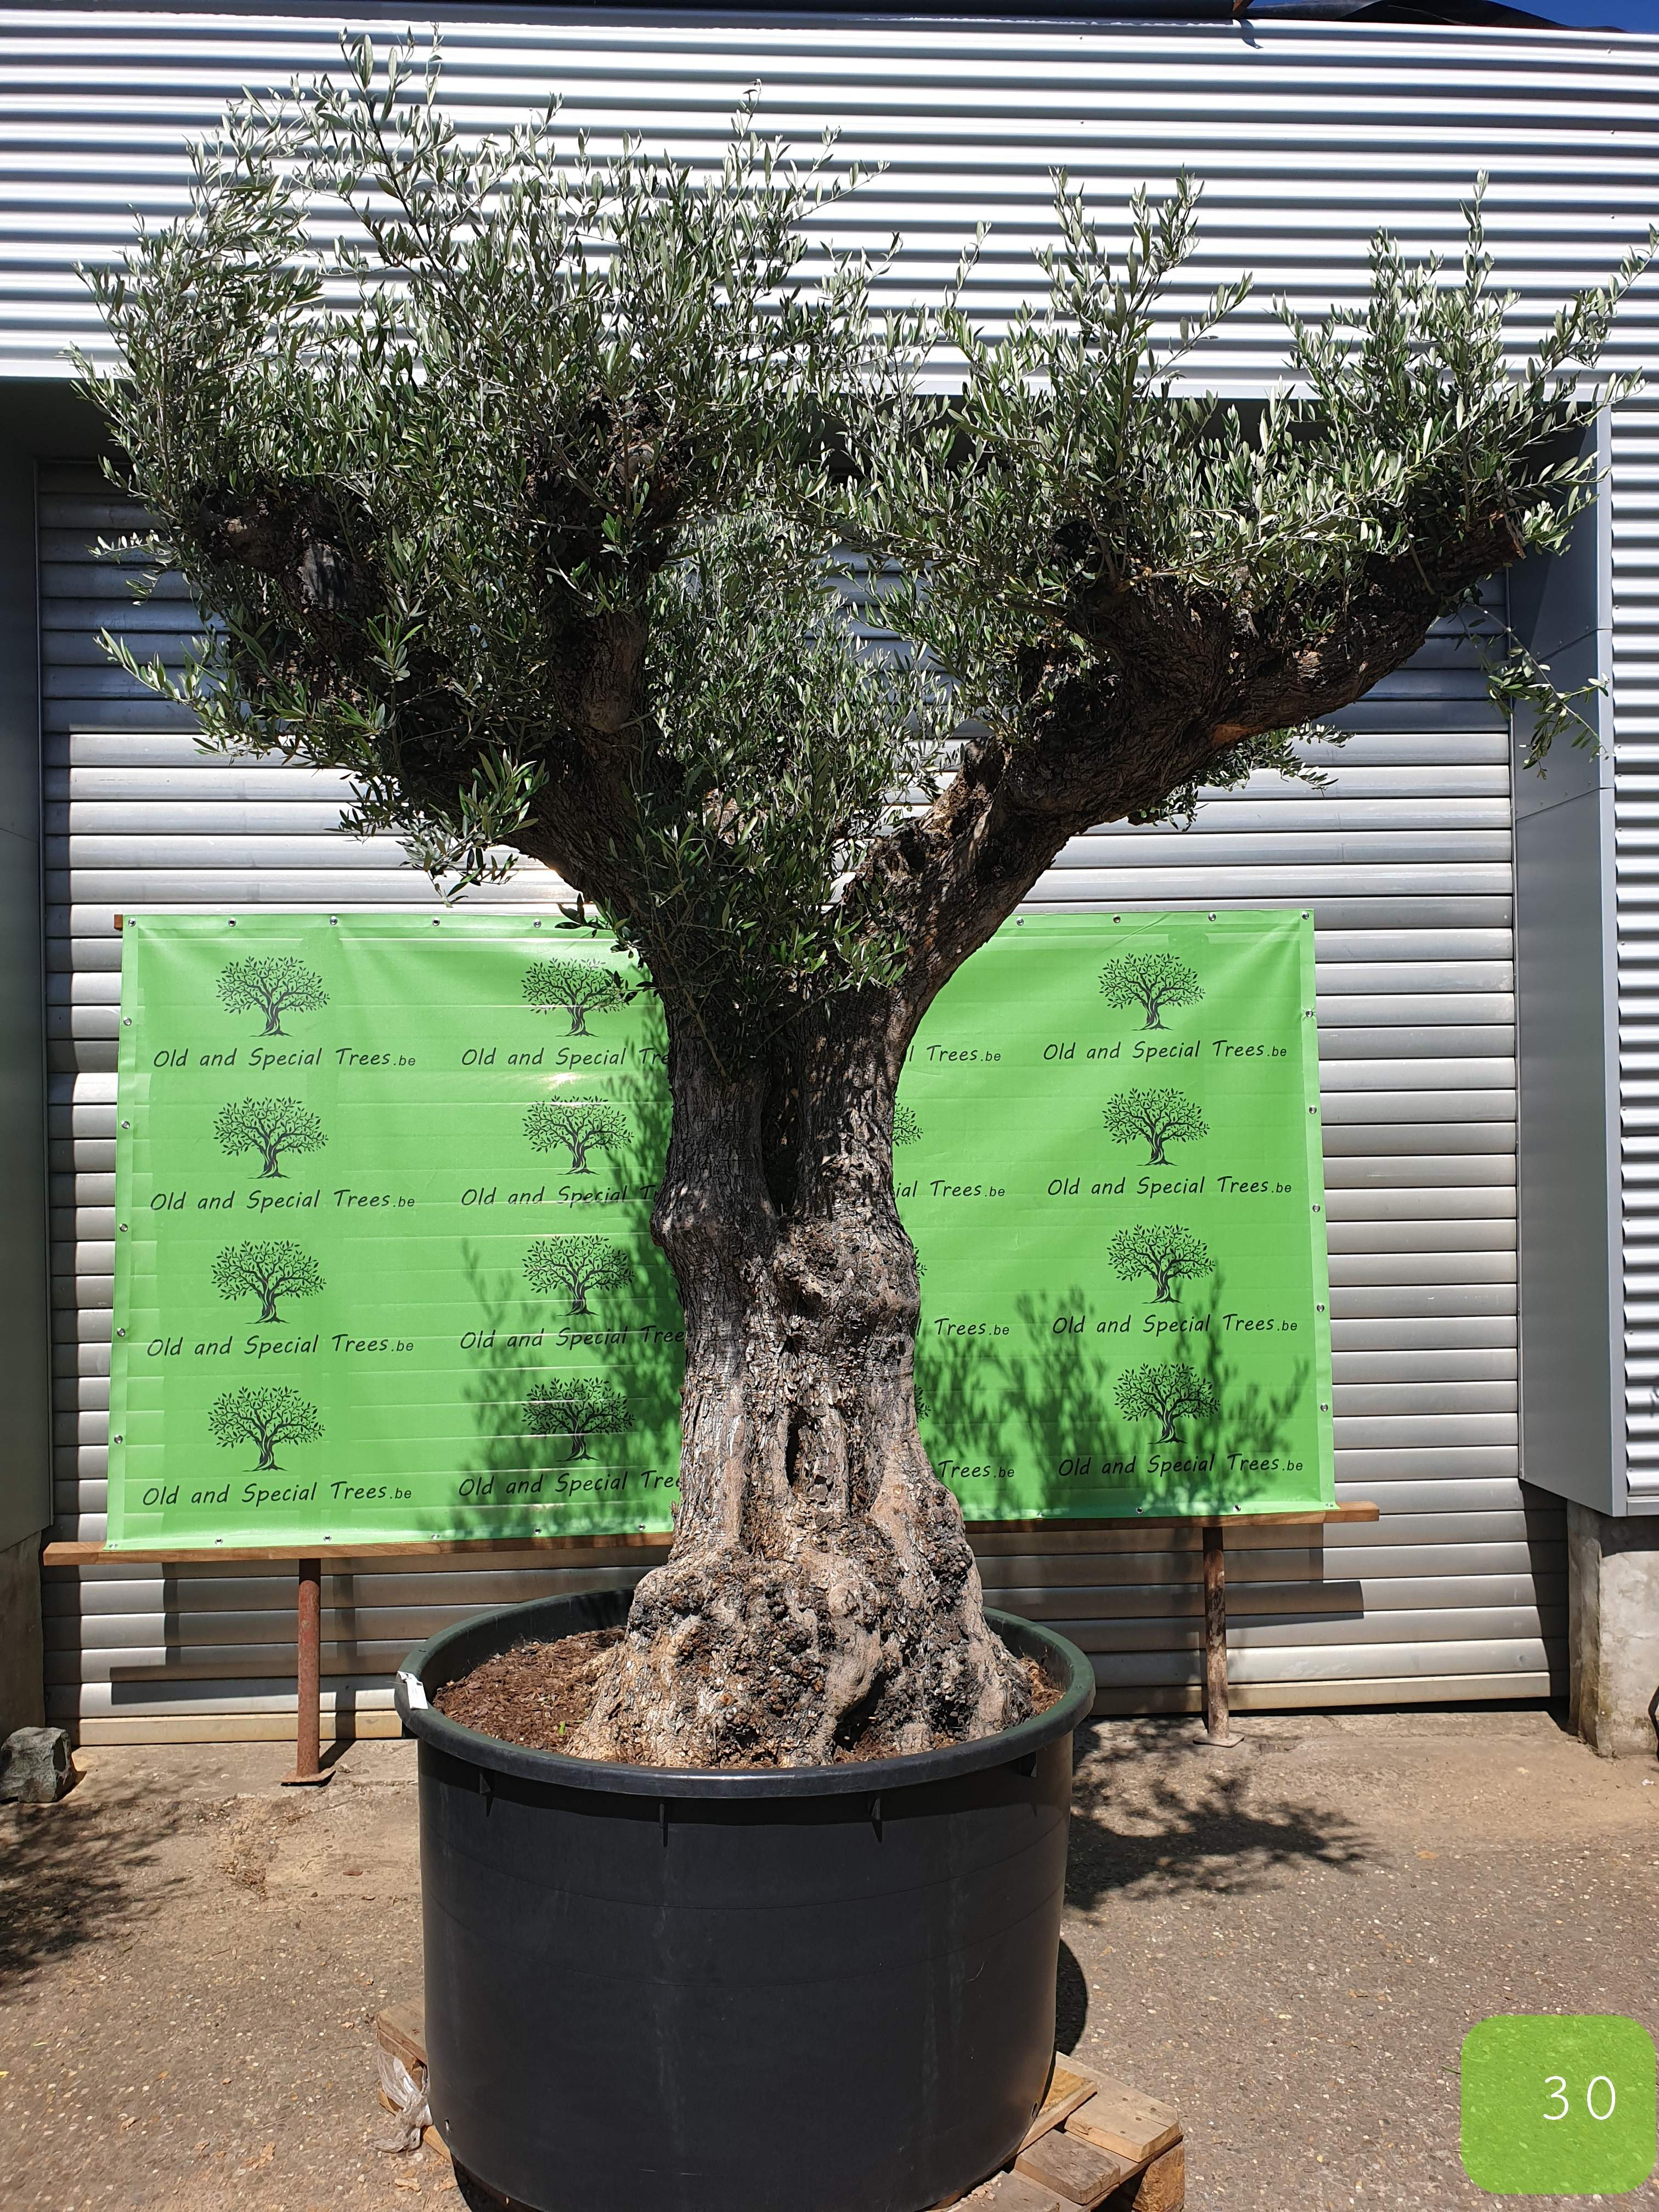 Olijfboom ibiza, old and special trees, olijfboom shop, olijfboomshop, olive tree, oliviers, olivier, olivos, olivo, finca de olivos, olijfboomexpert, olijfboomspecialist,